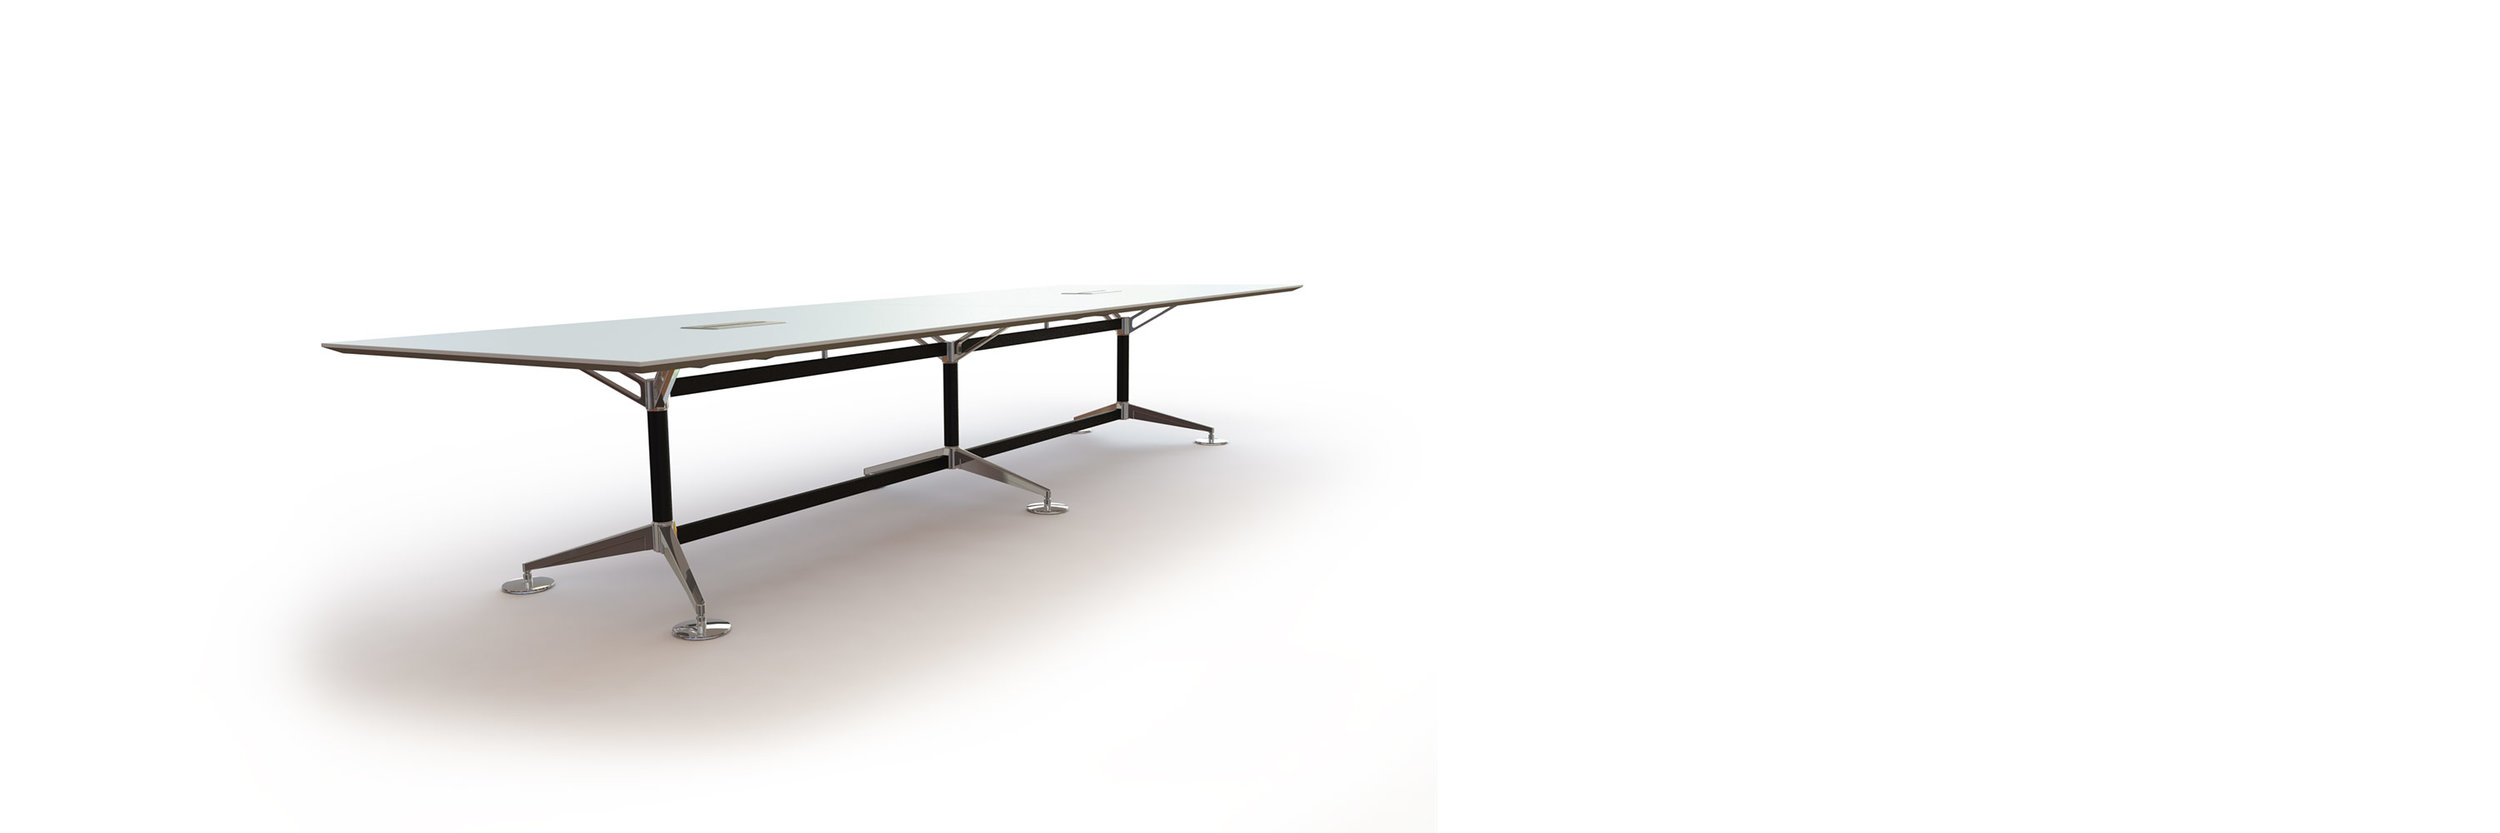 Tables - Boardroom, breakout and recreational